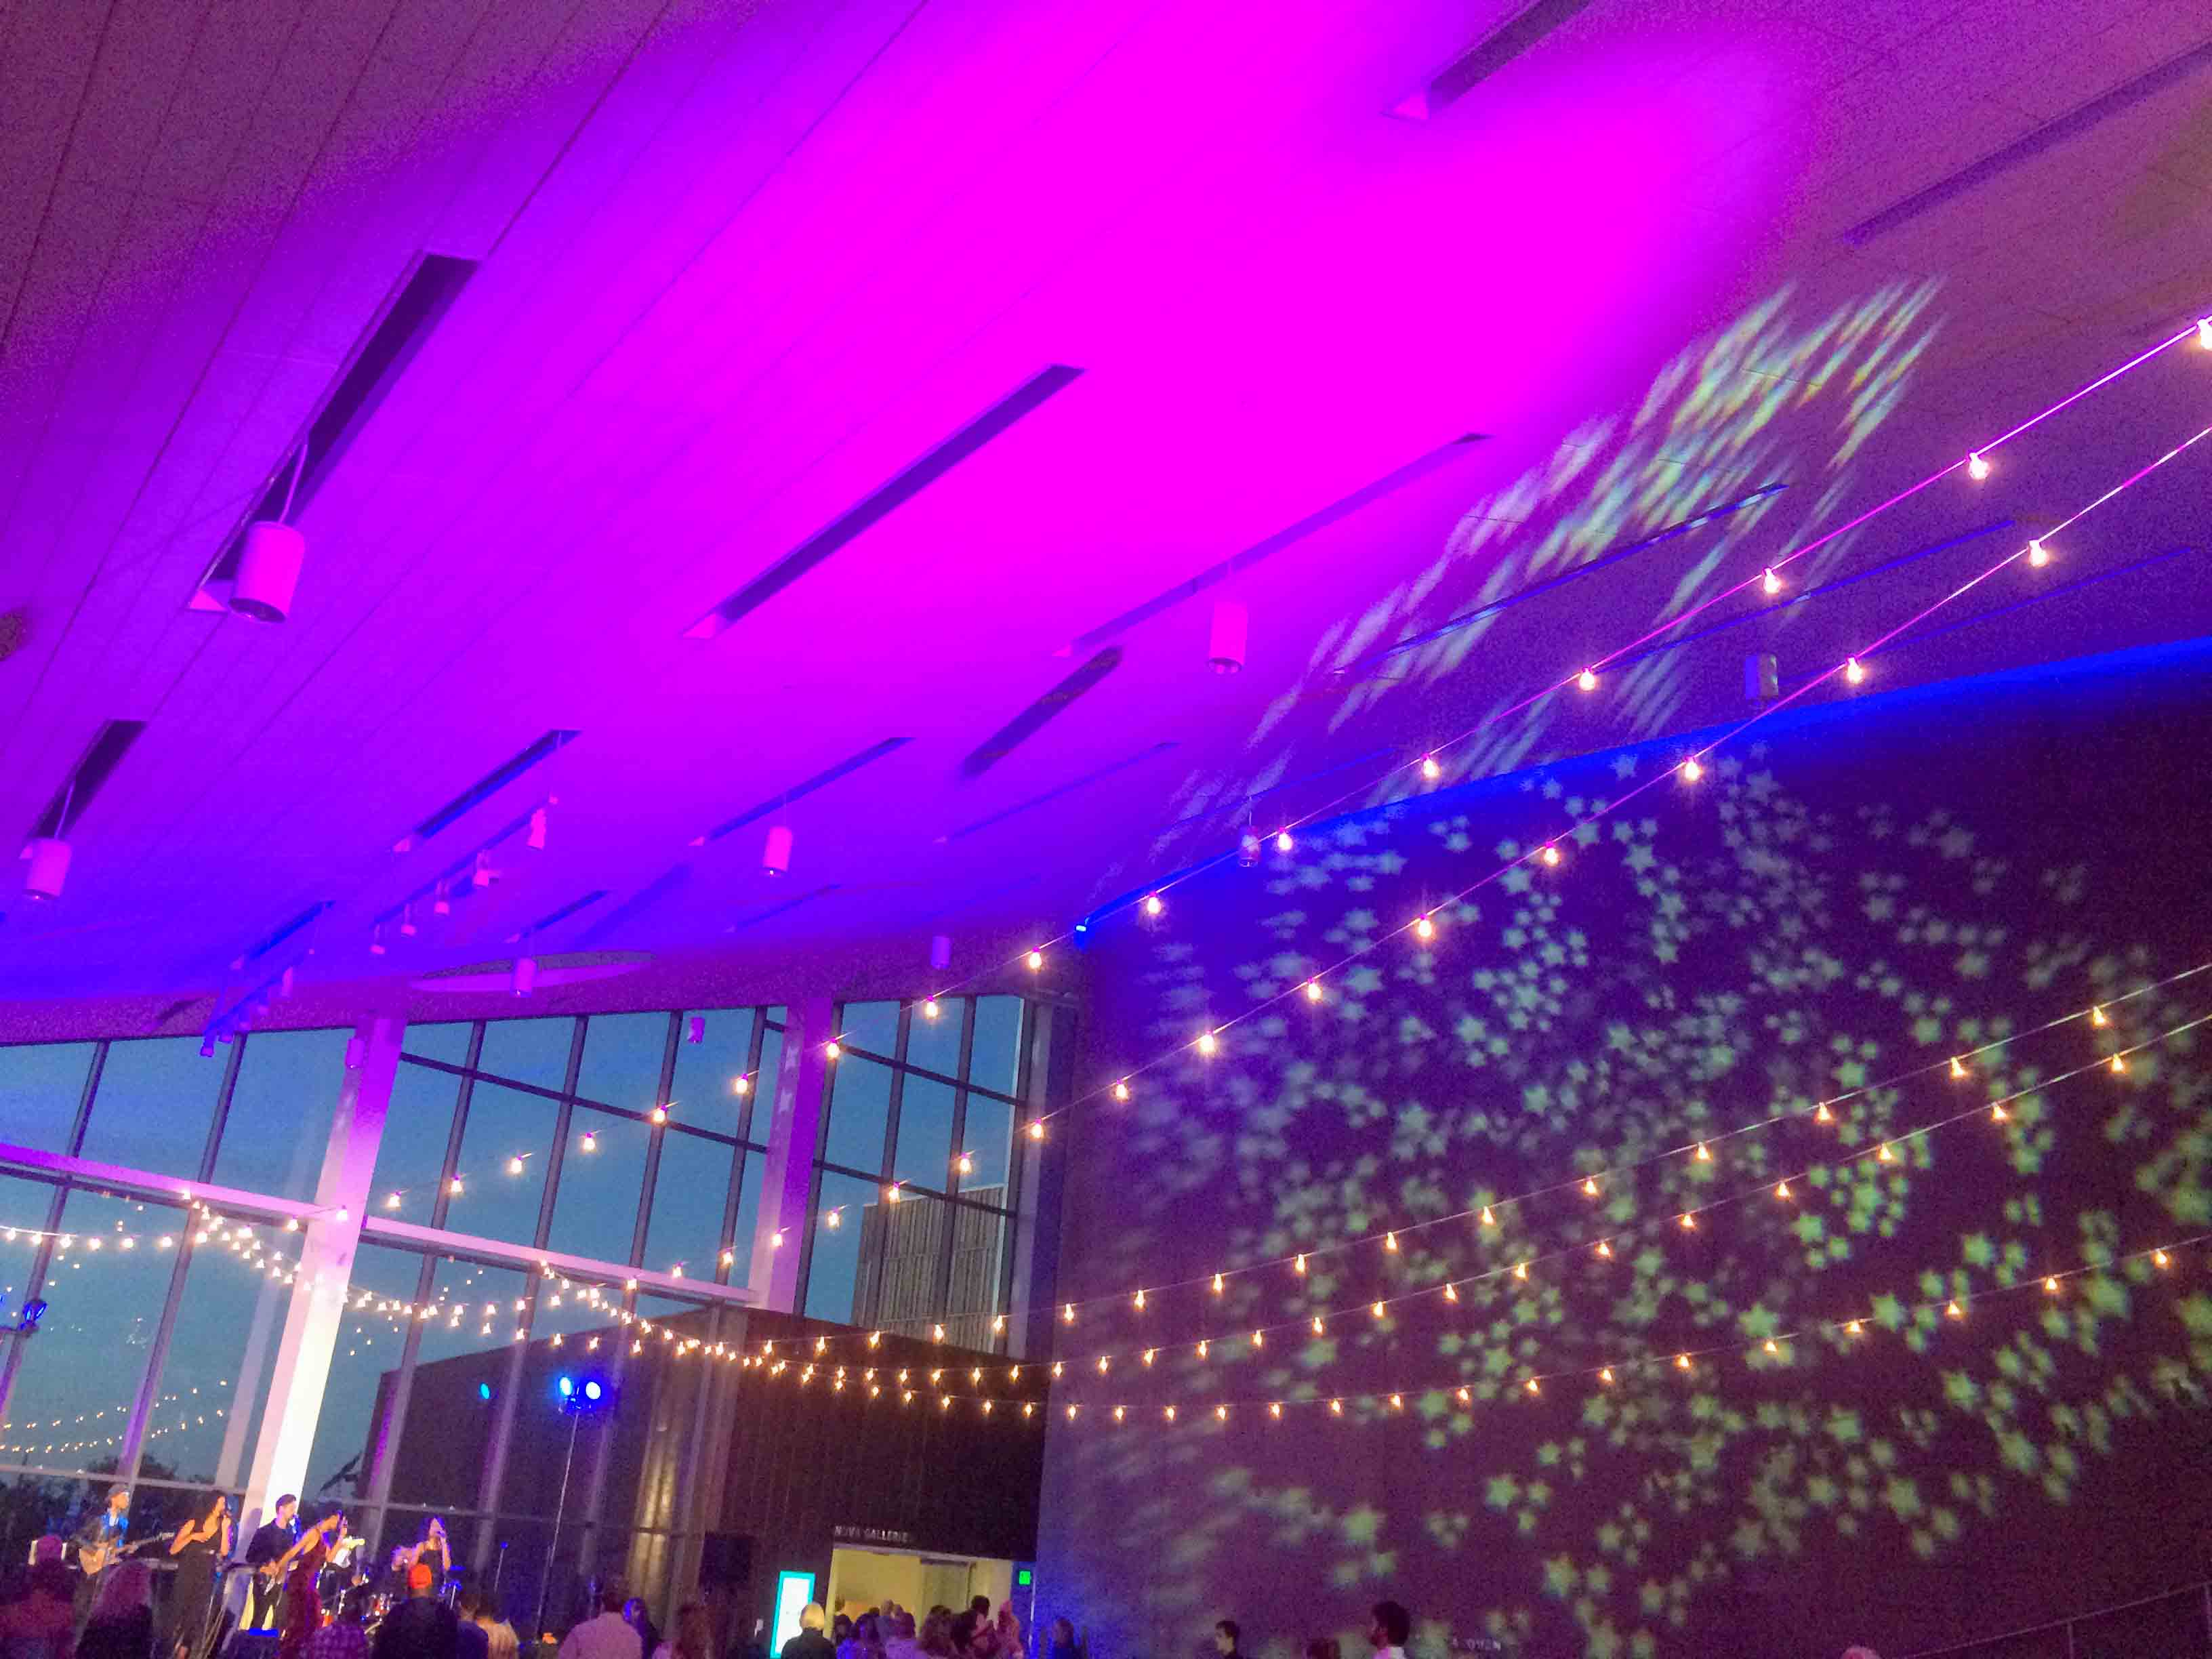 Bright purple and blue lights on Horizon Hall's ceiling, star lights projected onto wall, cafe lights strung across the room